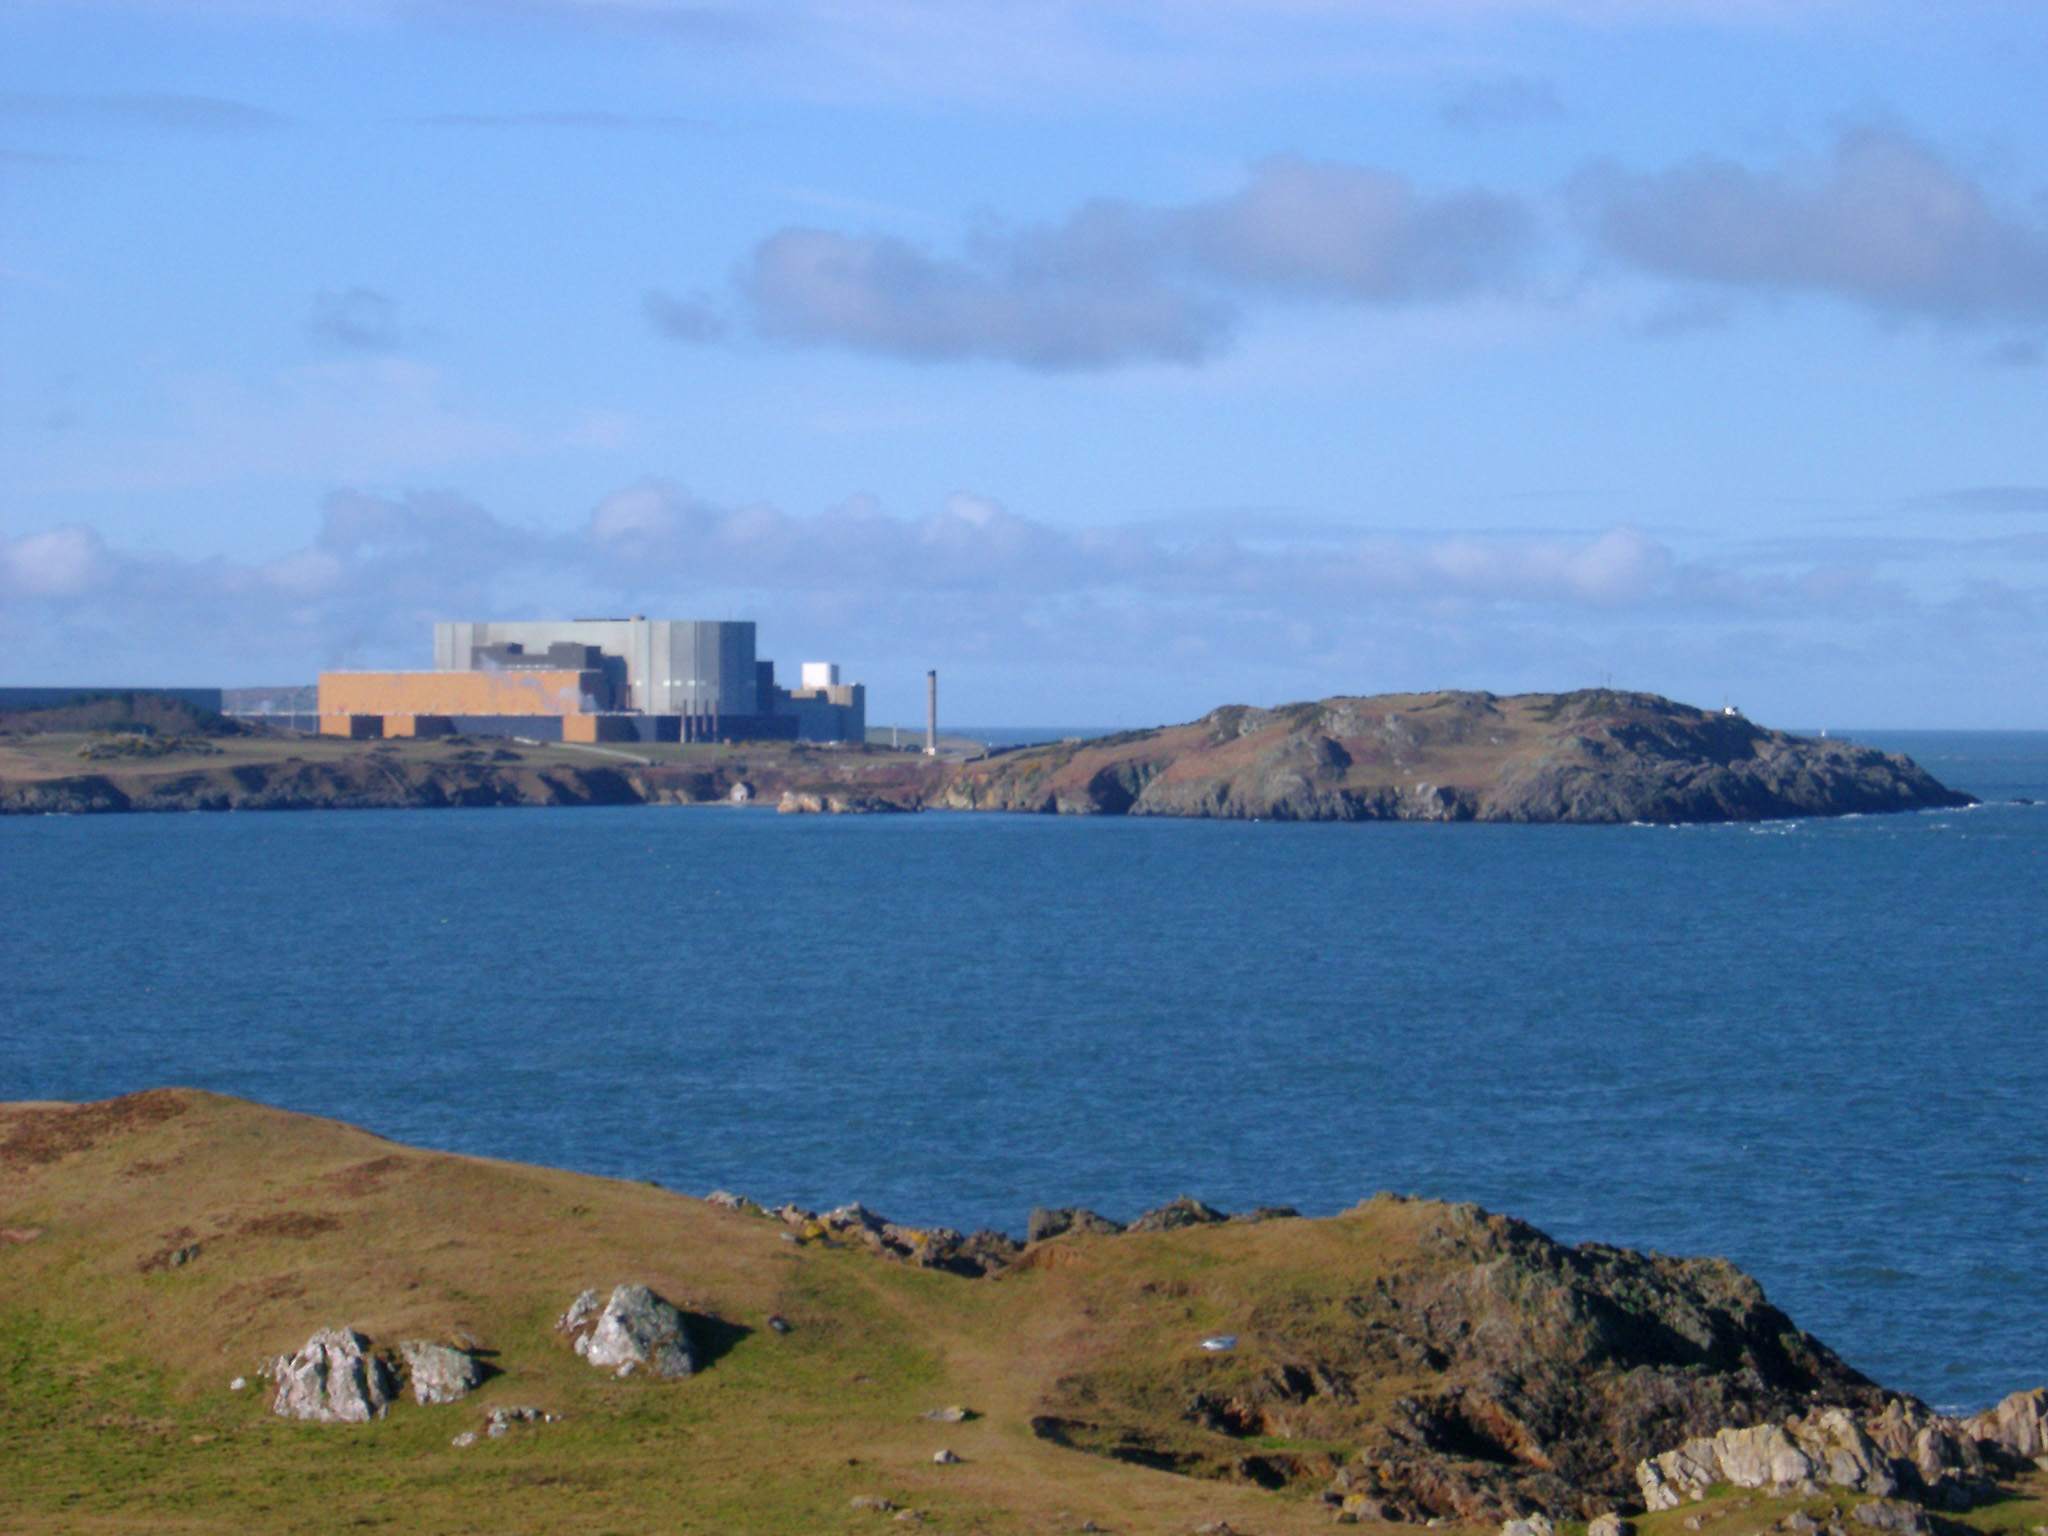 Wylfa Power Station, a nuclear power station situated just west of Cemaes Bay on the island of Anglesey, North Wales.